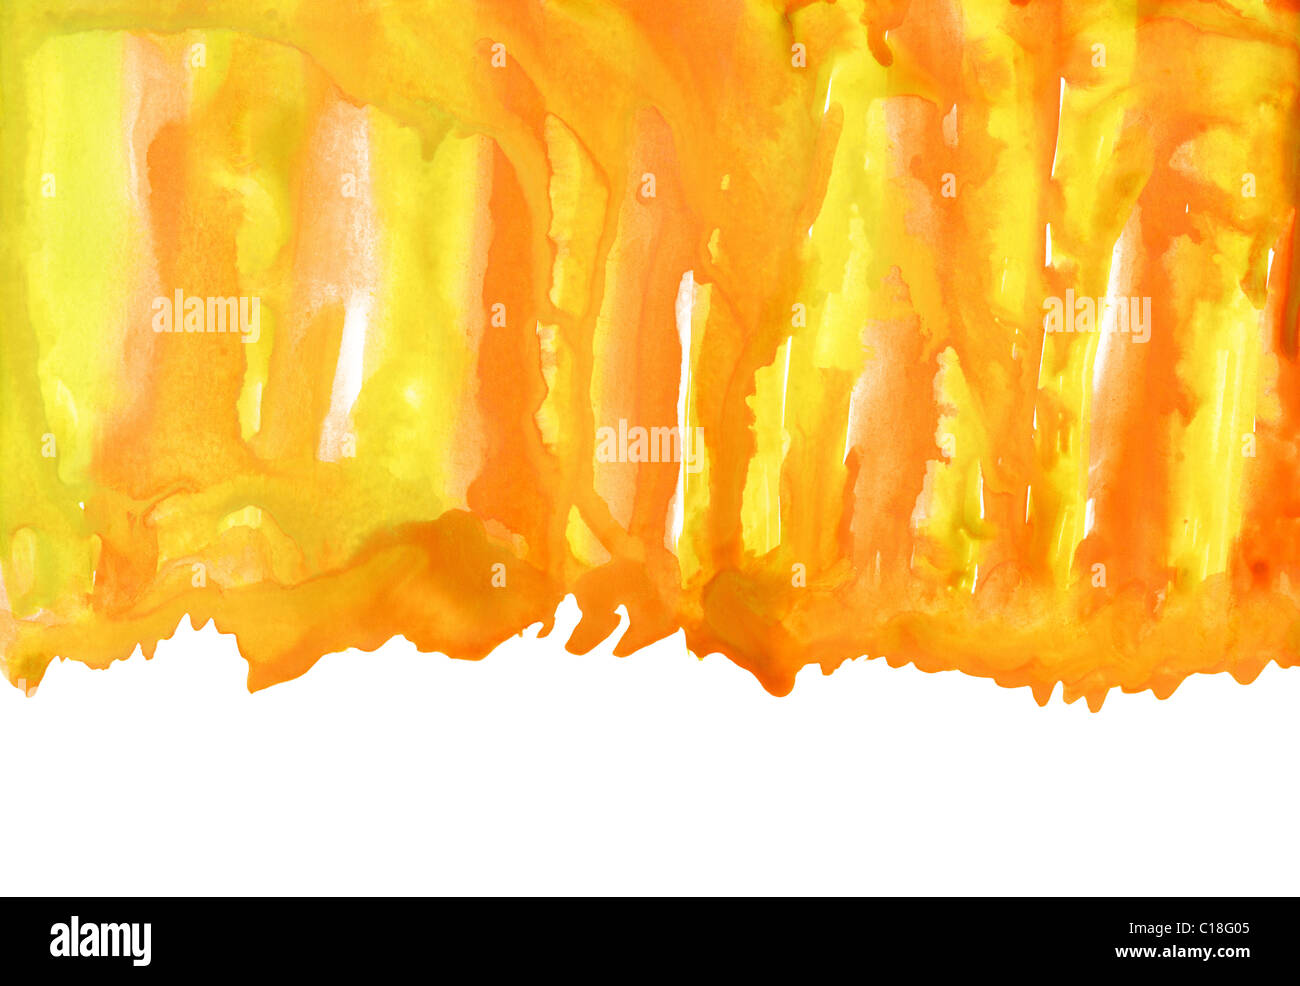 Abstract Orange Yellow And White Watercolor Background